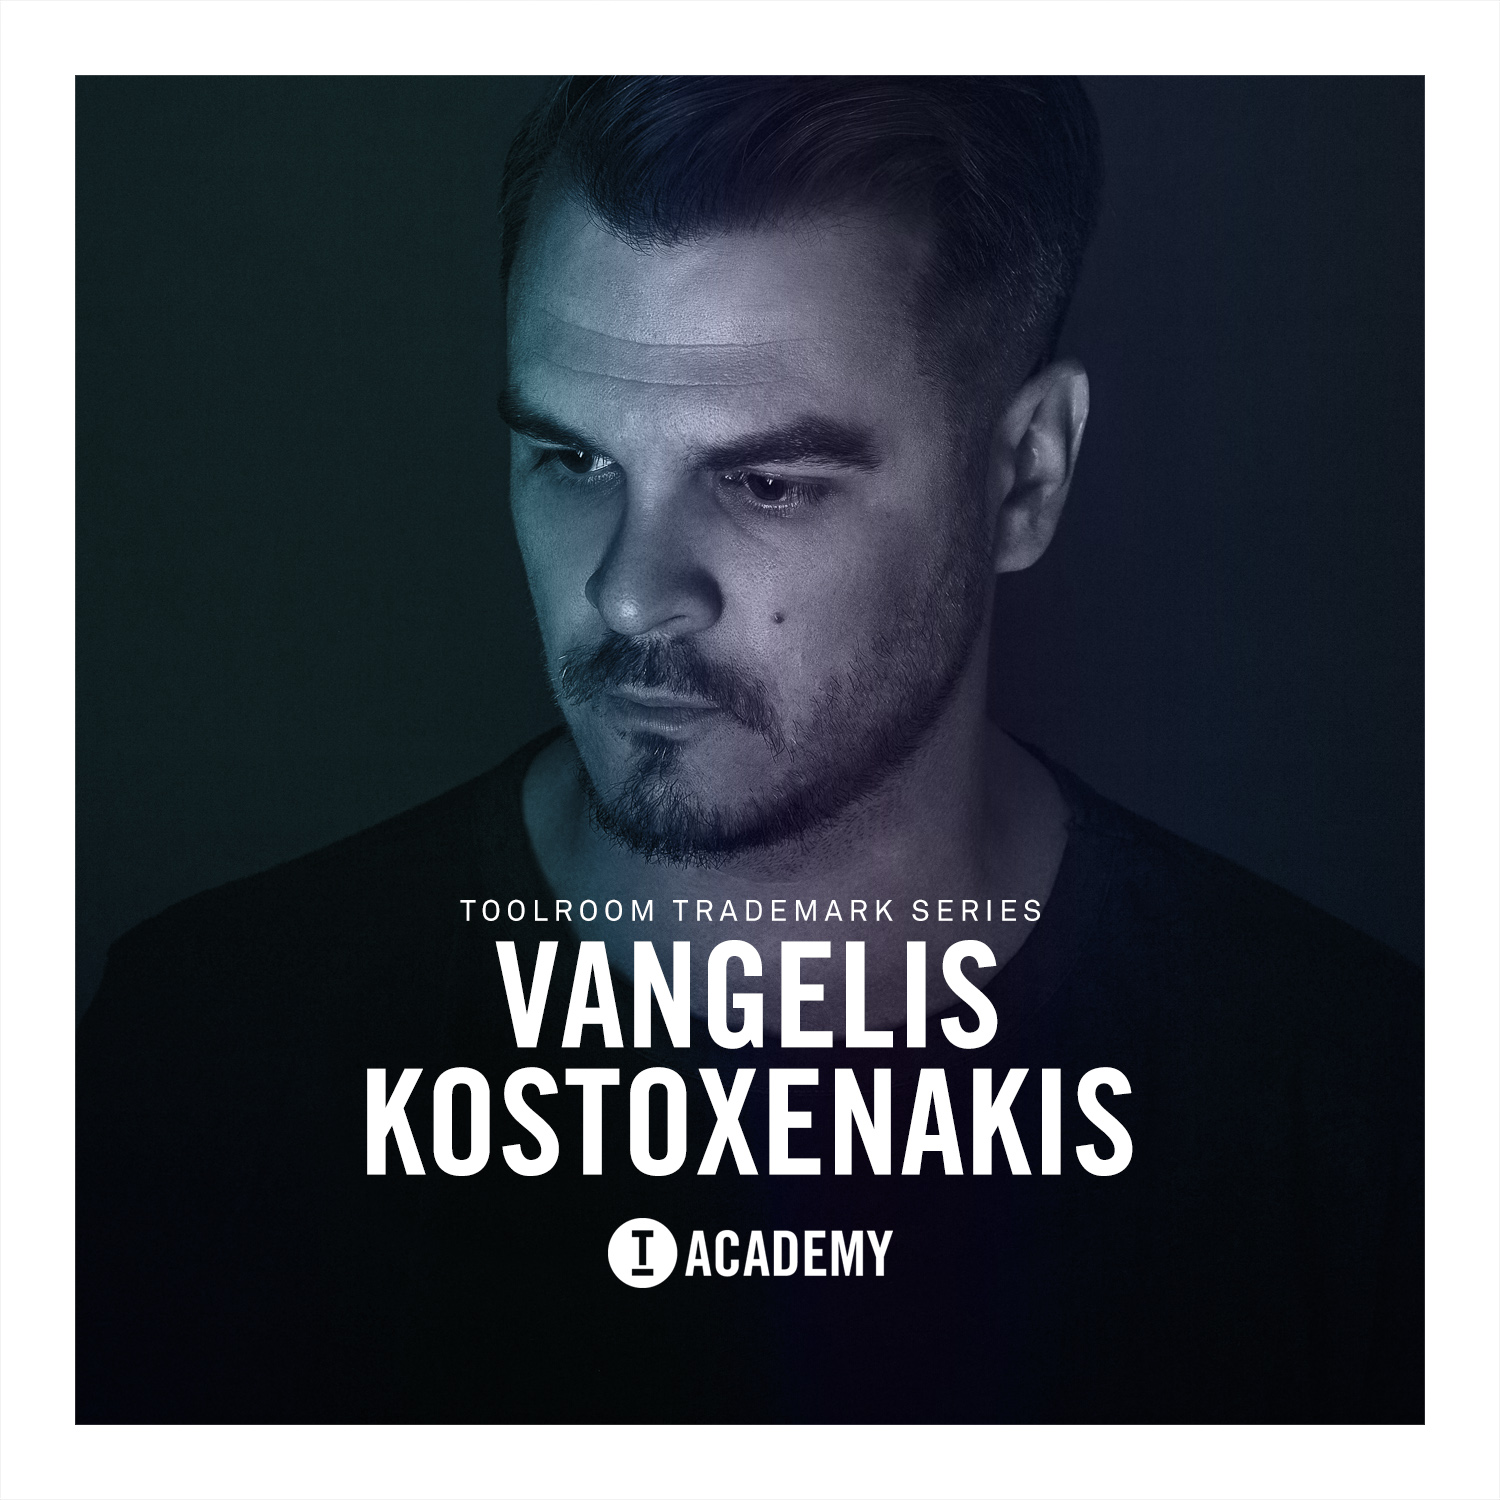 Toolroom Trademark Series – Vangelis Kostoxenakis